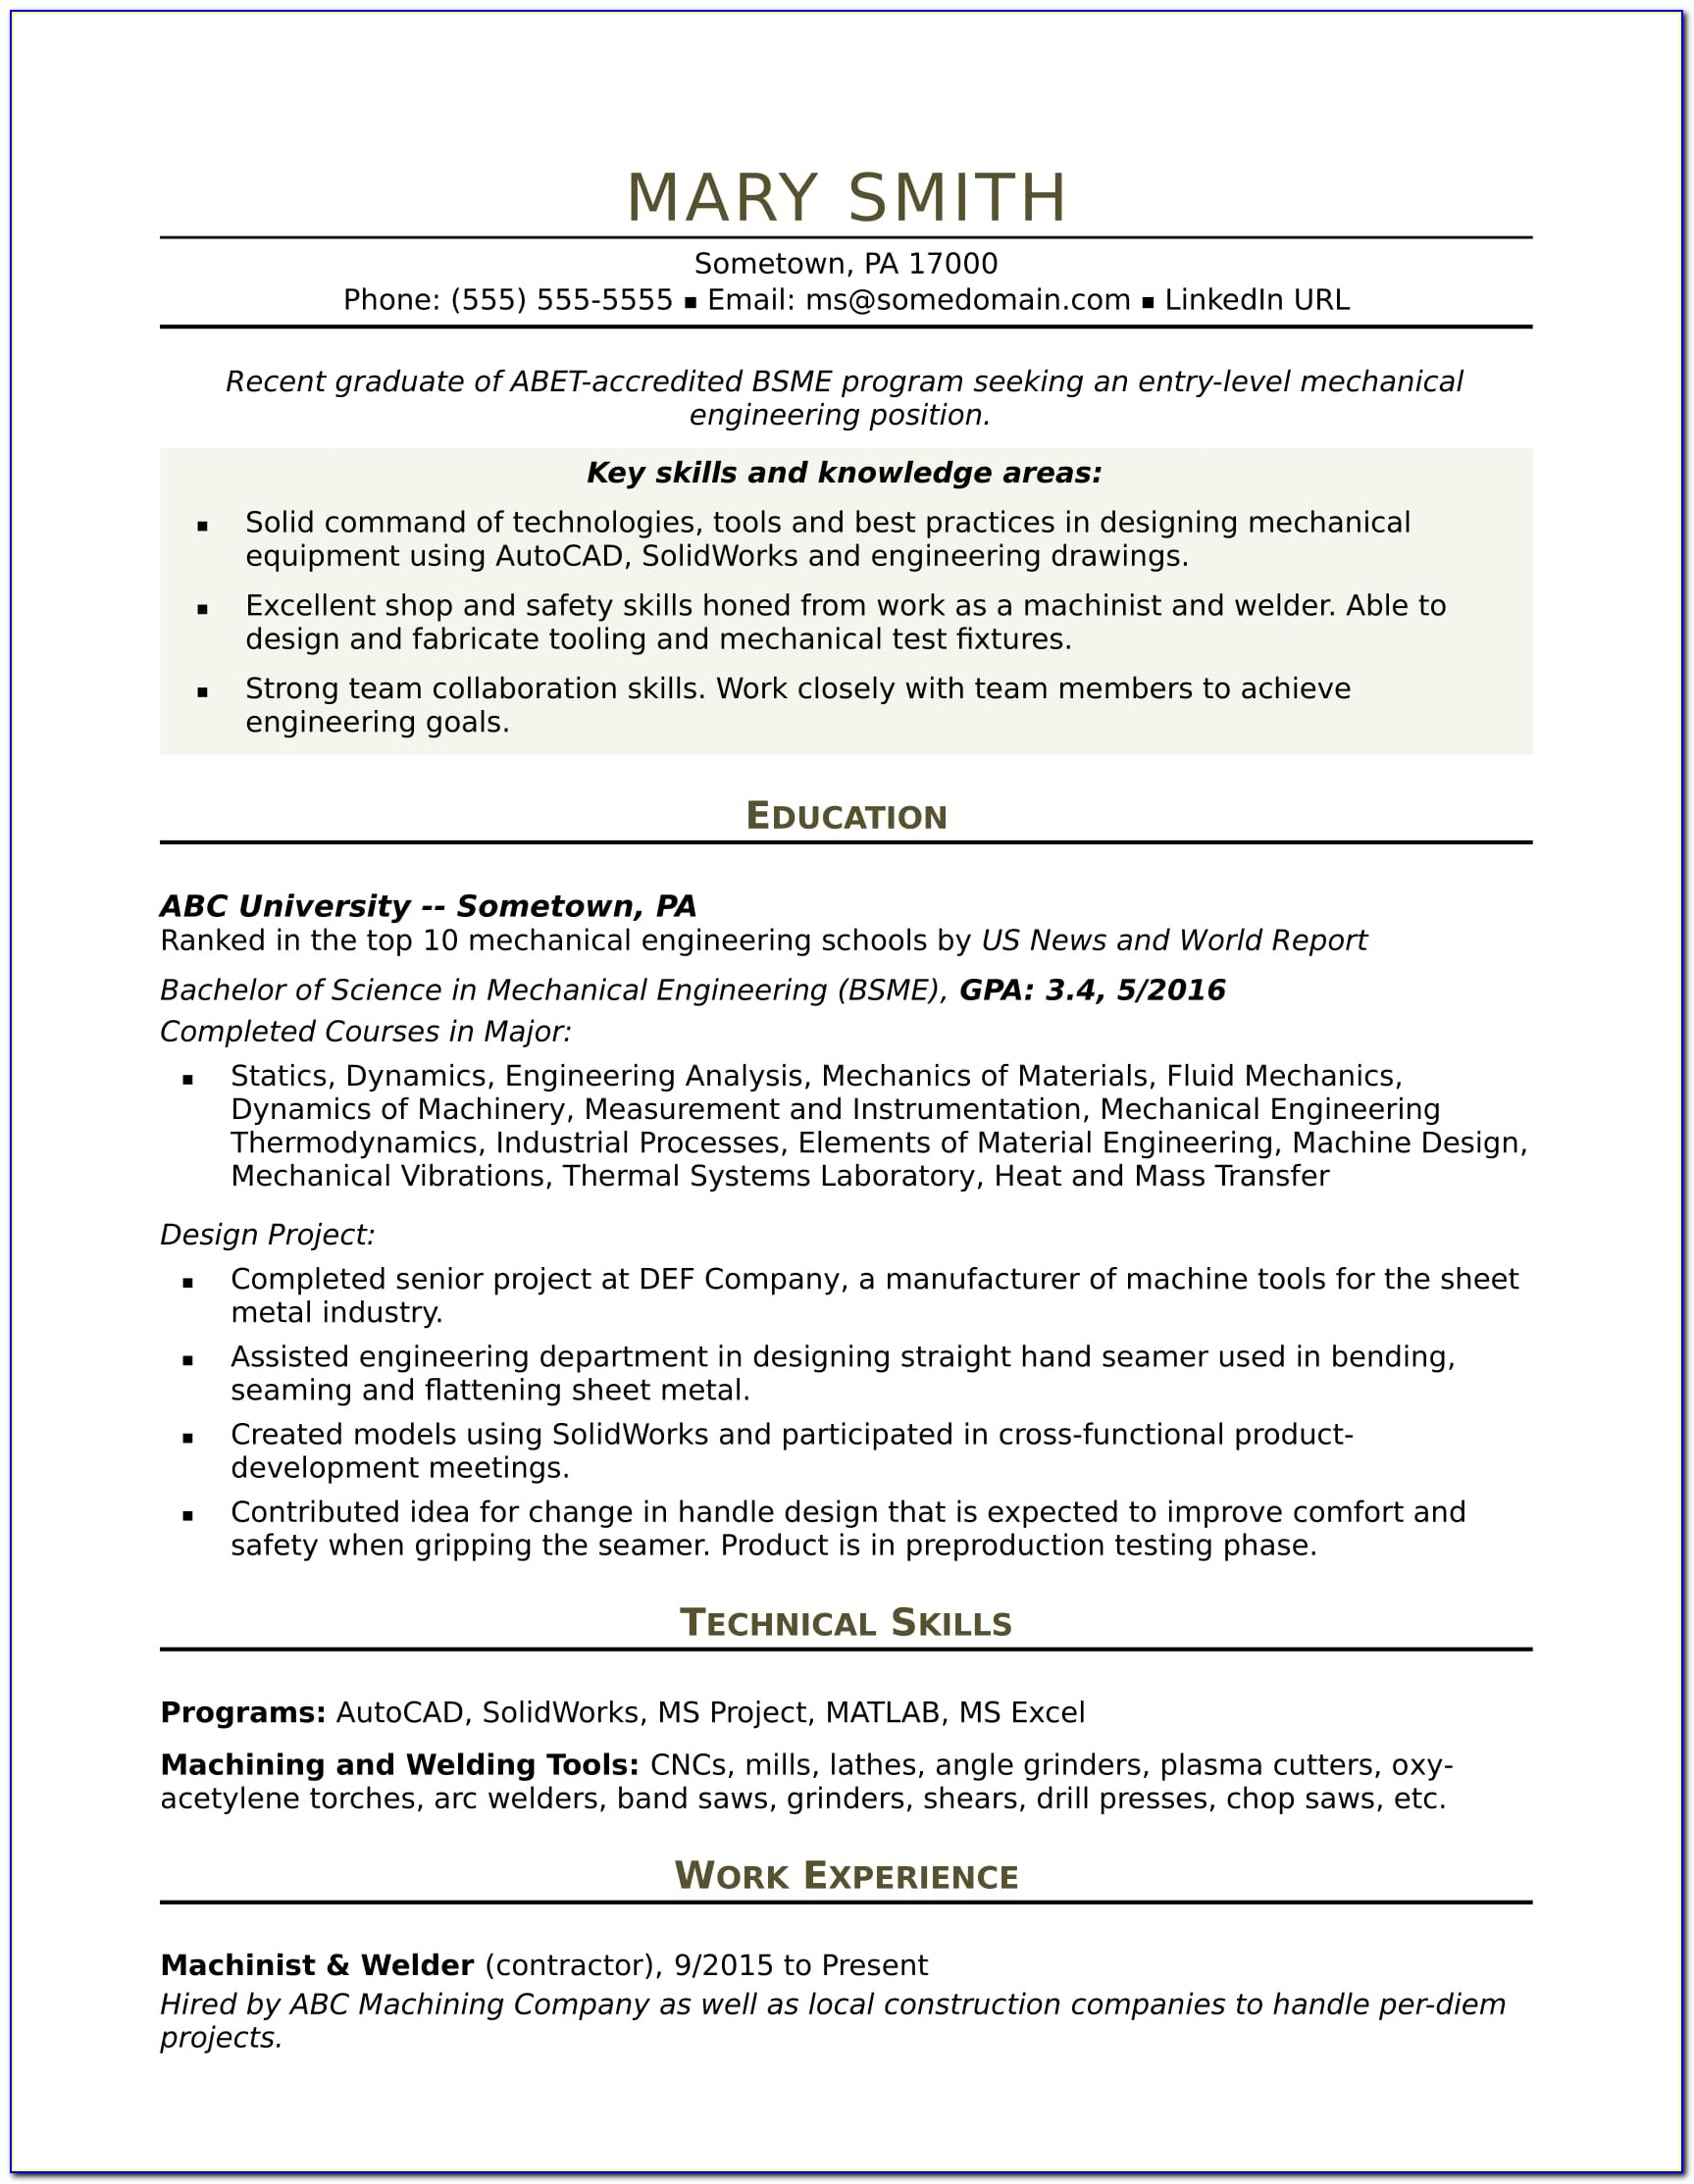 Resume Writing For Civil Engineers